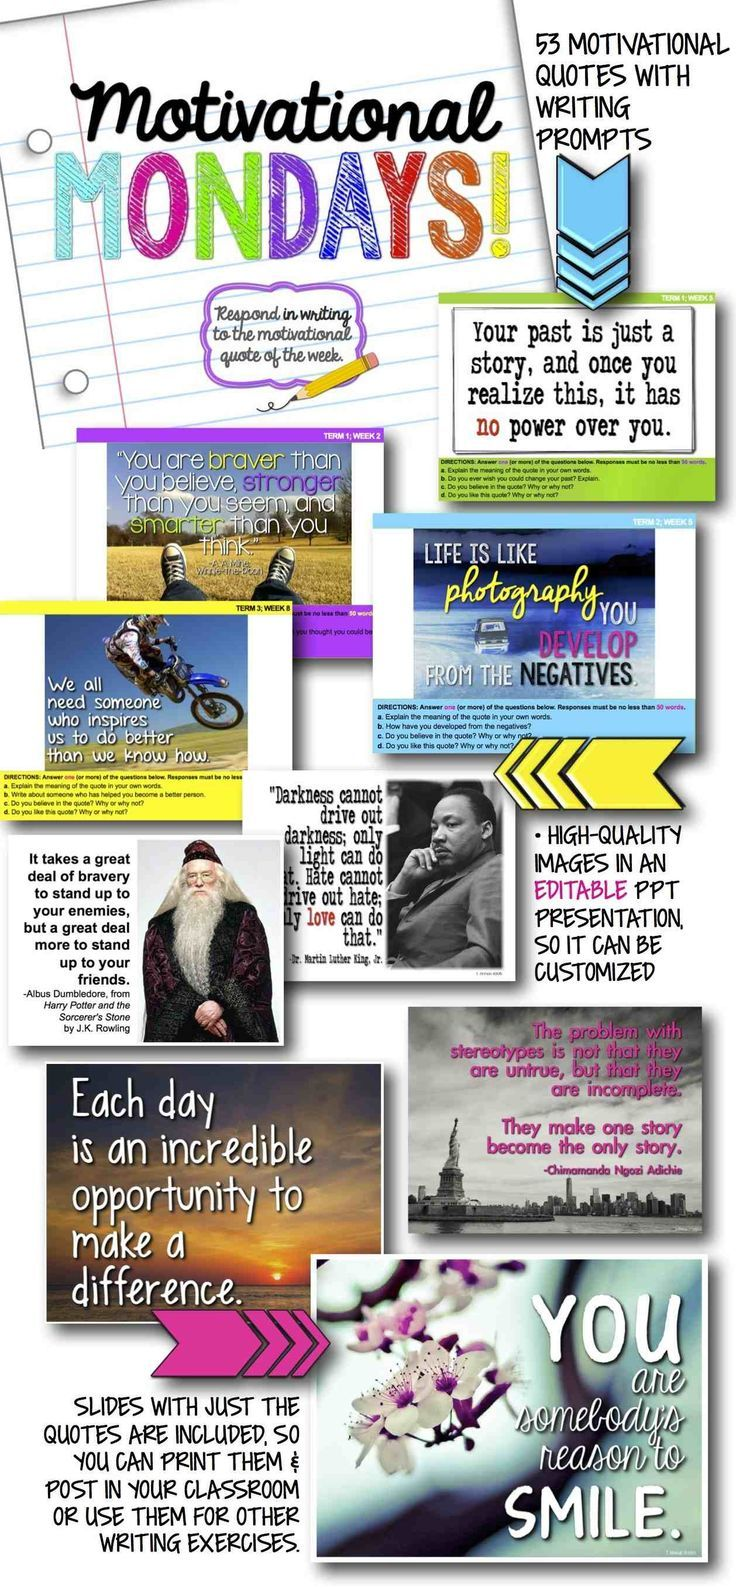 Year Of Bell Ringers Motivational Monday Quotes Prompts For